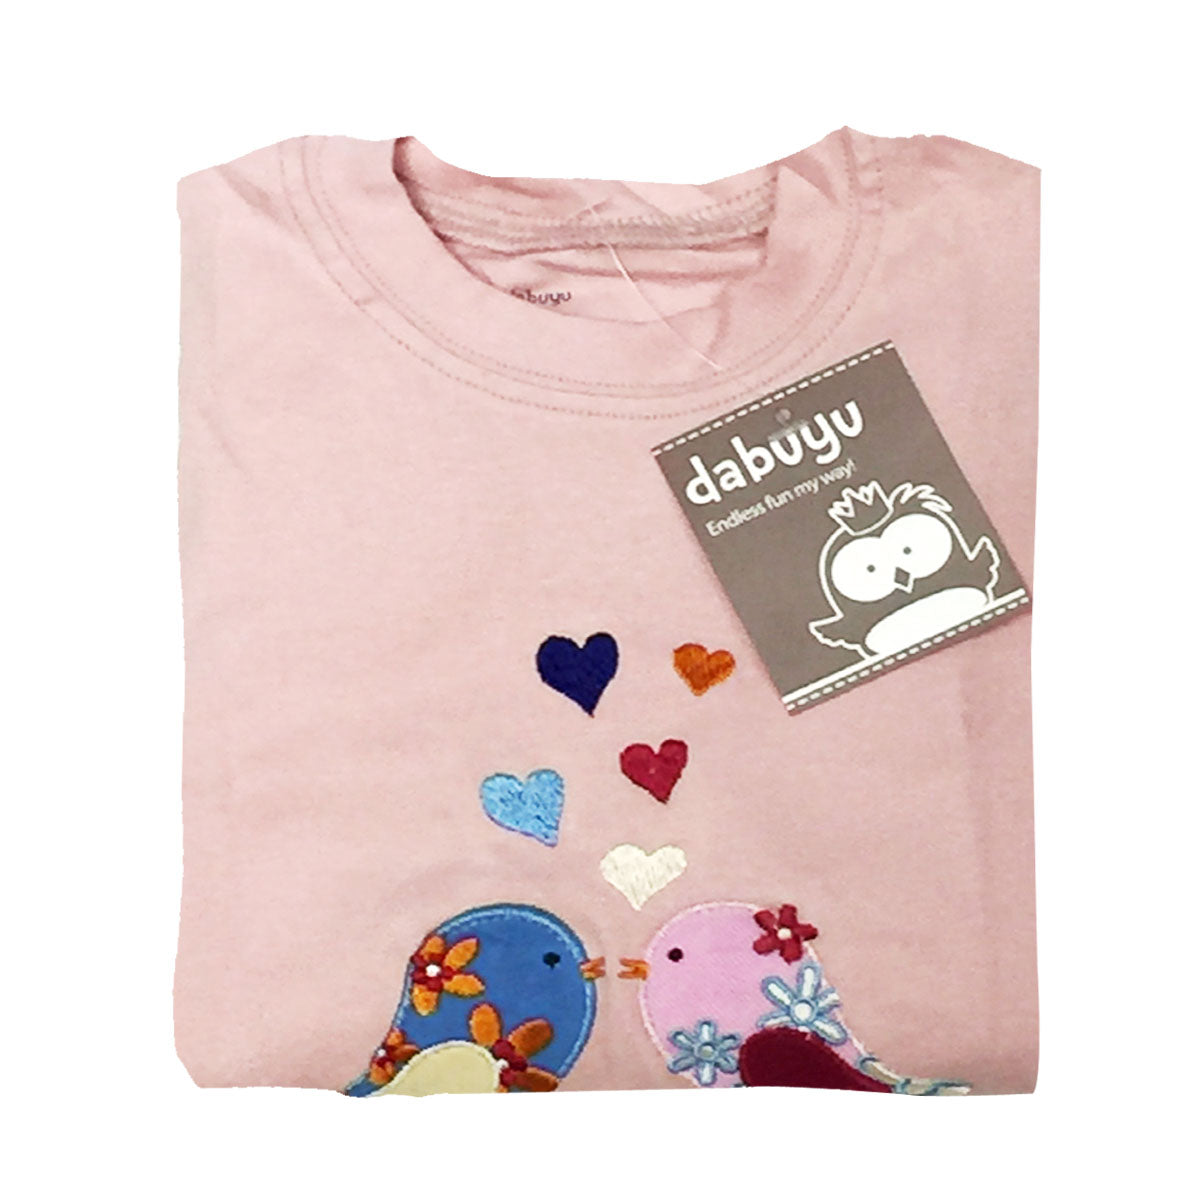 Dabuyu Love Birds Children's Pajamas